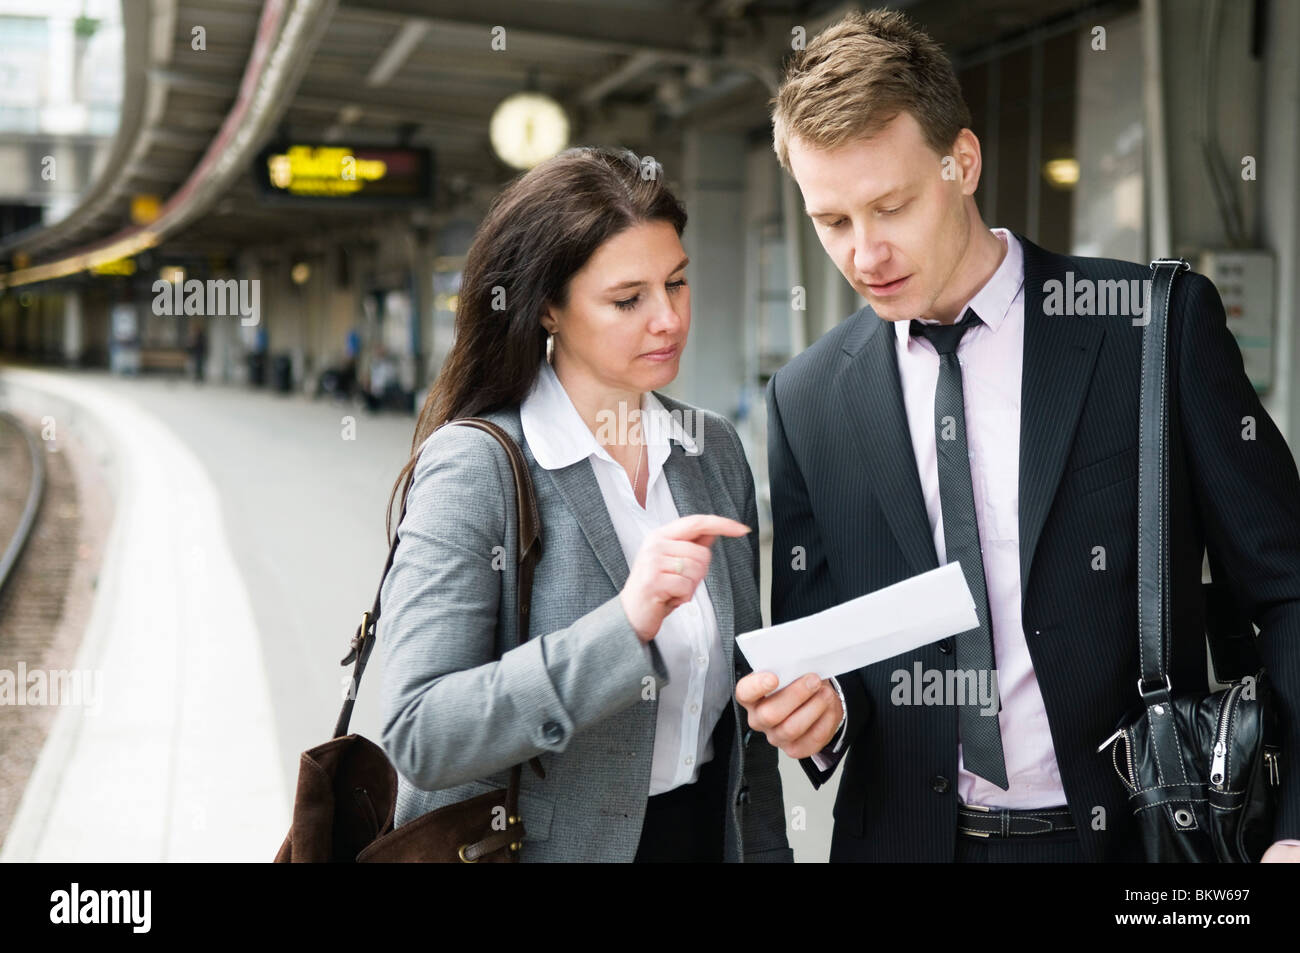 Woman and am nchecking the ticket - Stock Image